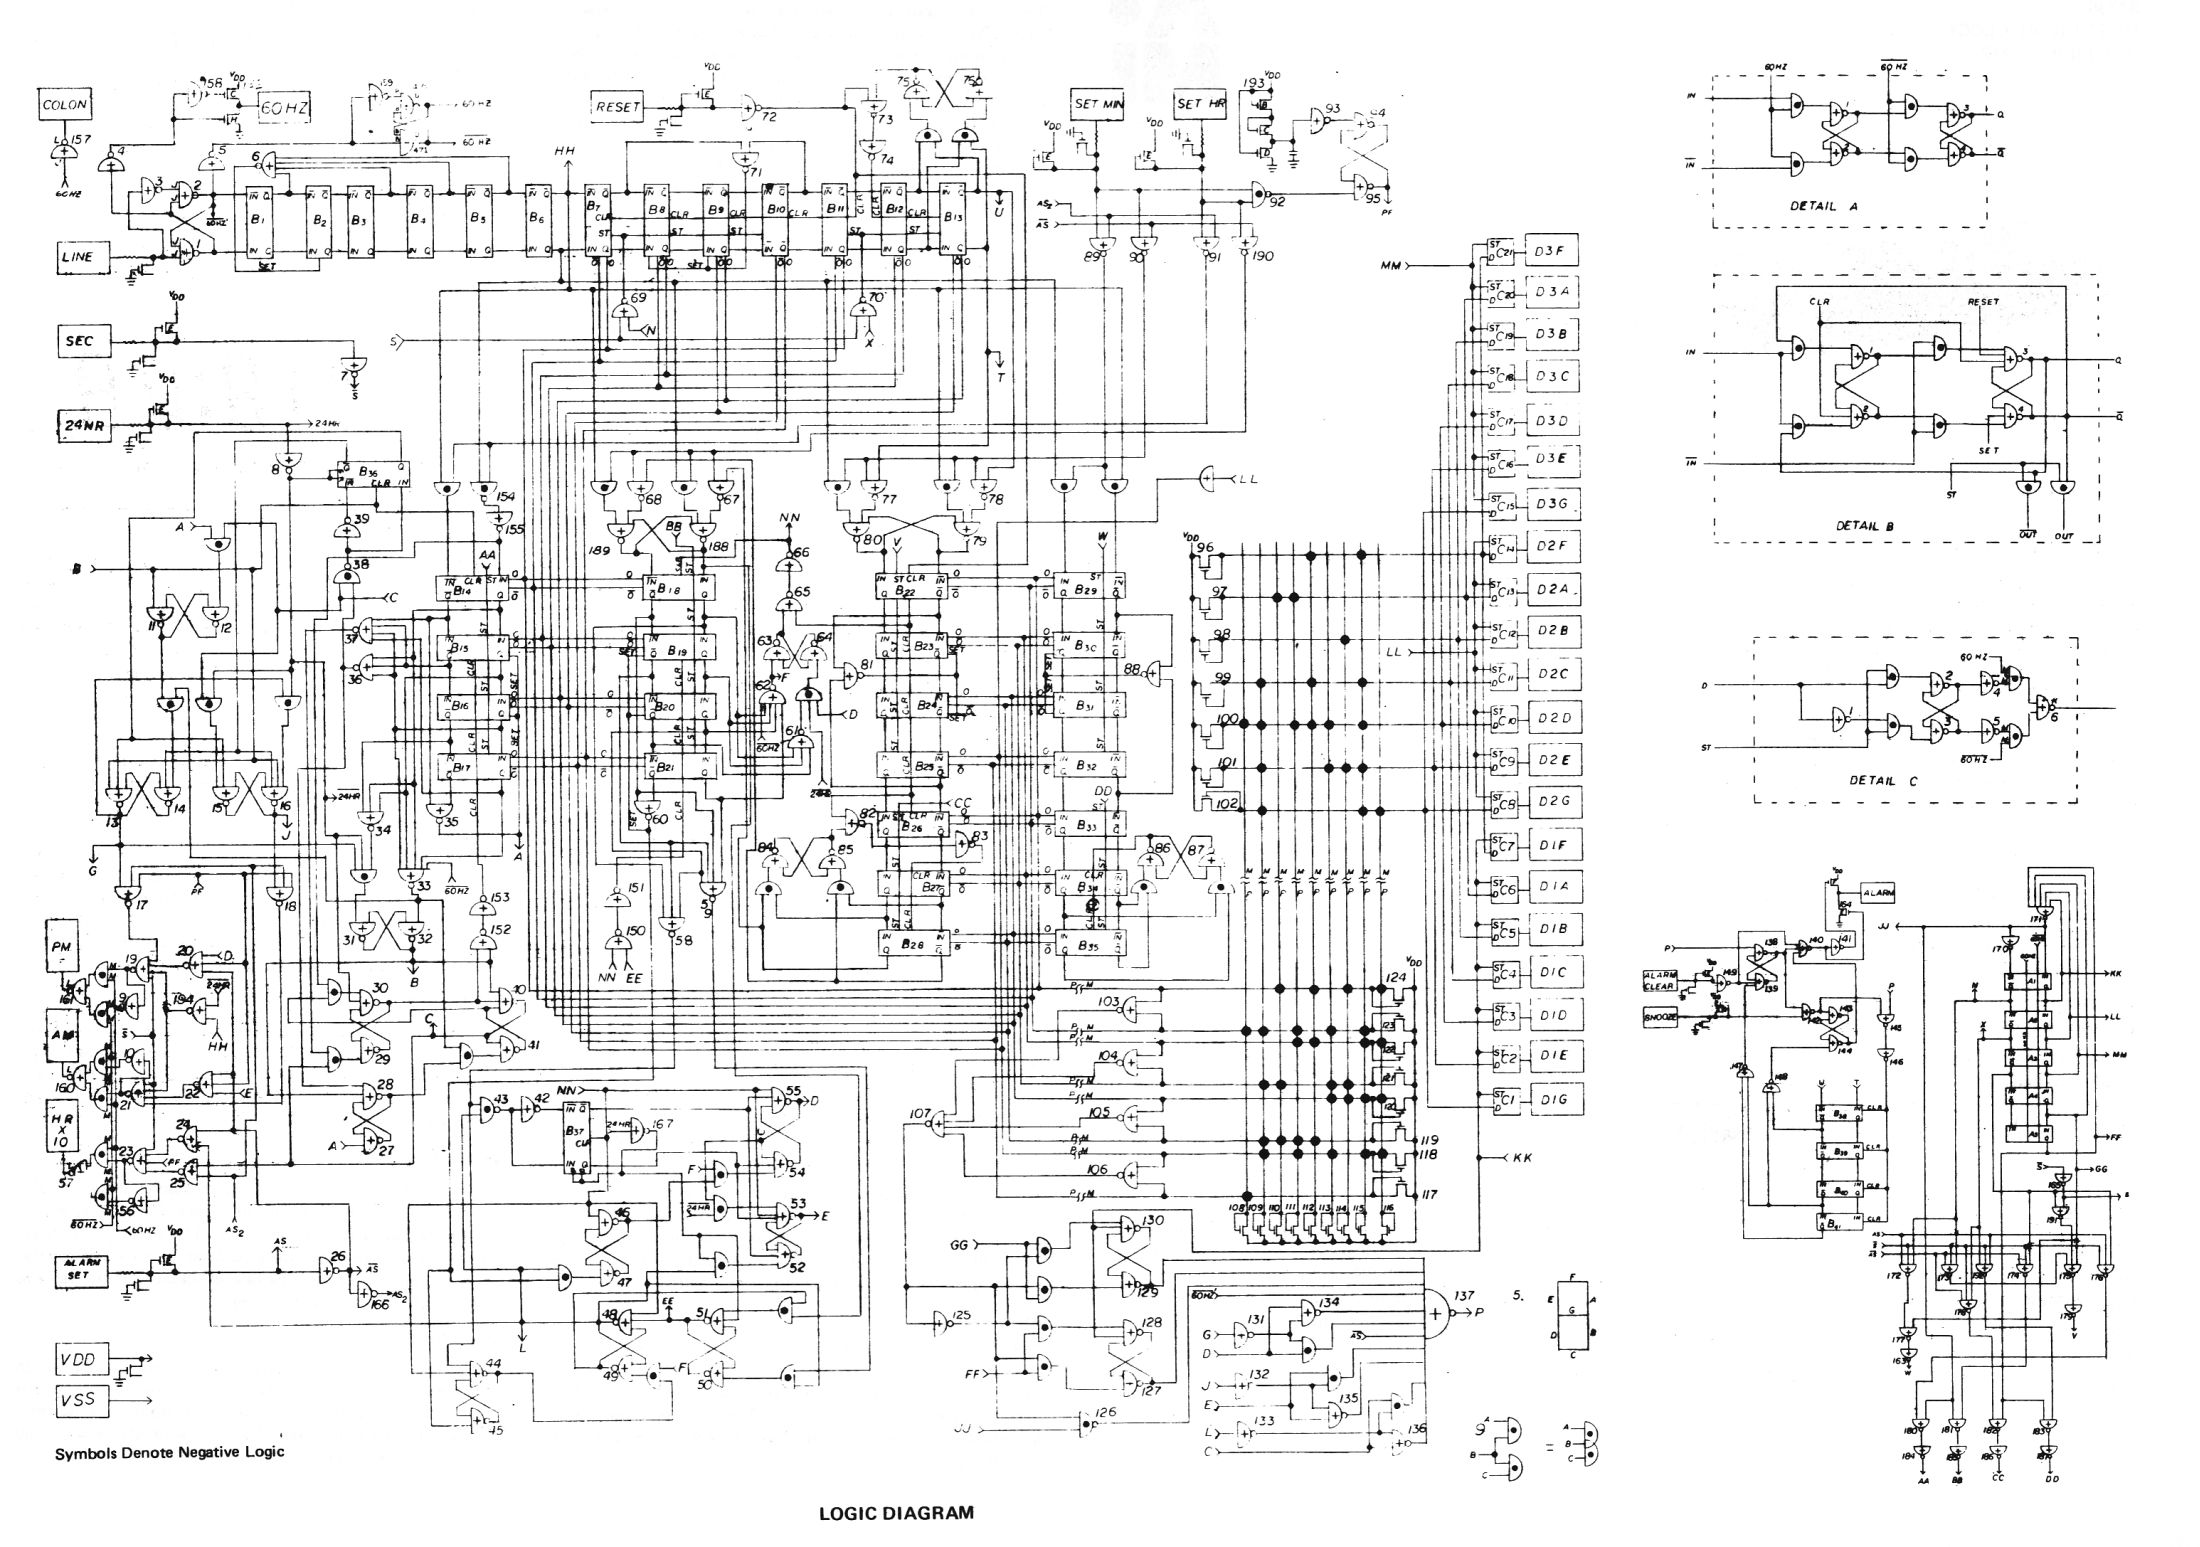 digital clock logic schematic